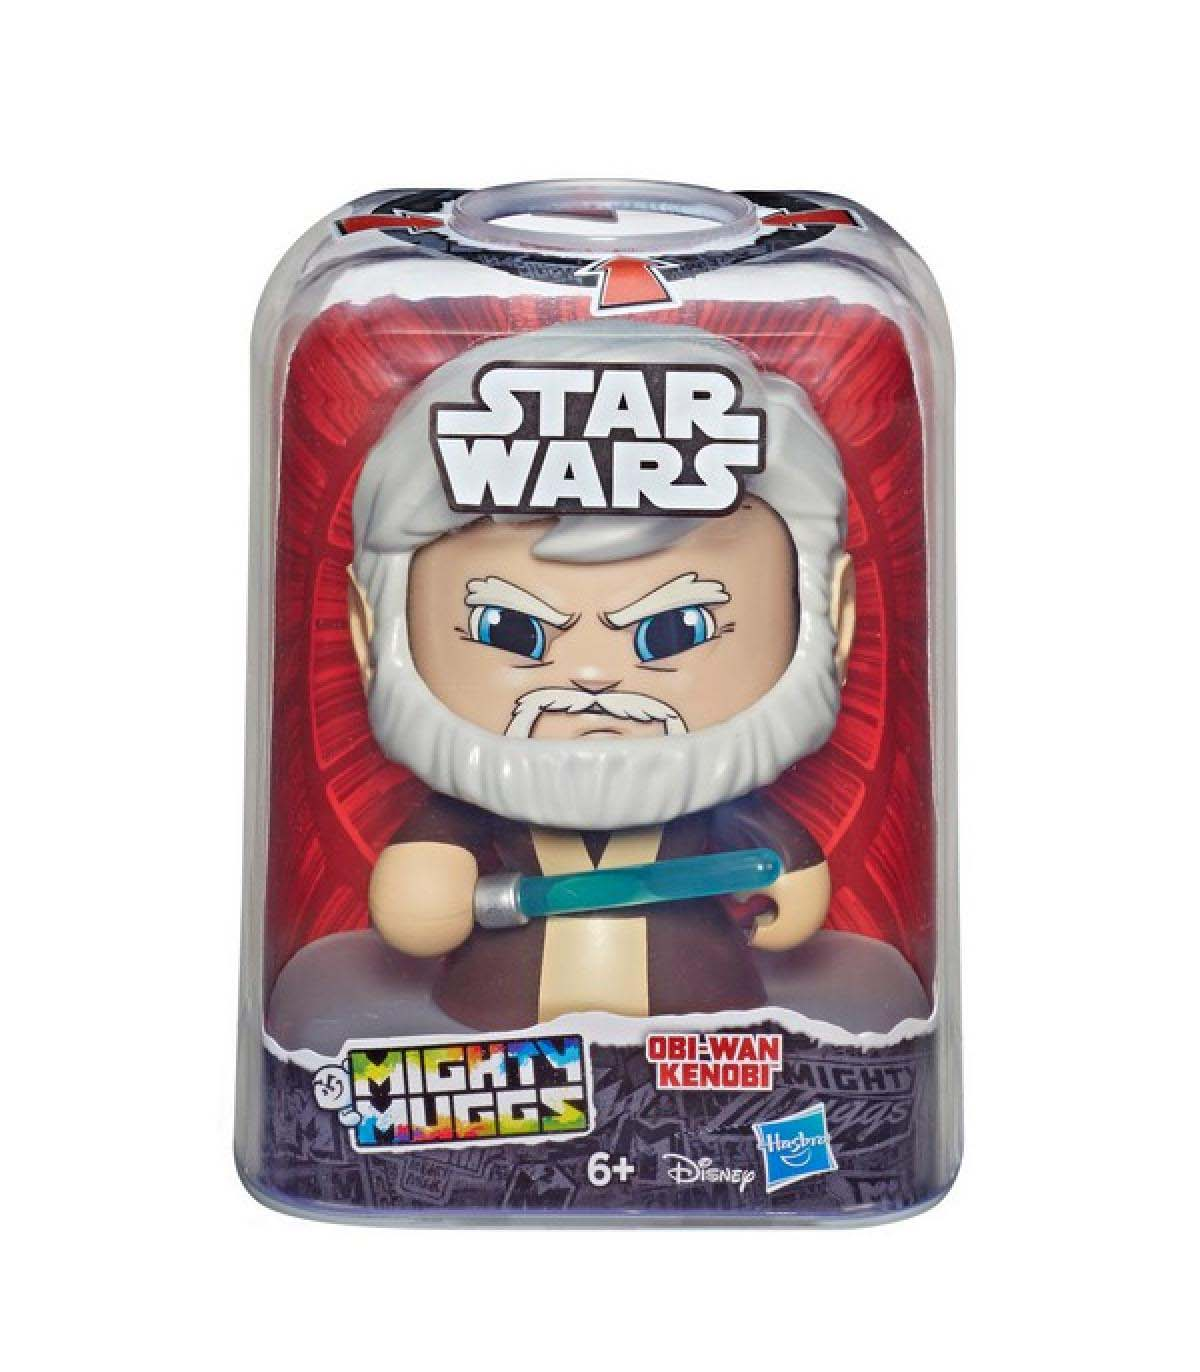 Mighty Muggs Star Wars Obi Wan Hasbro